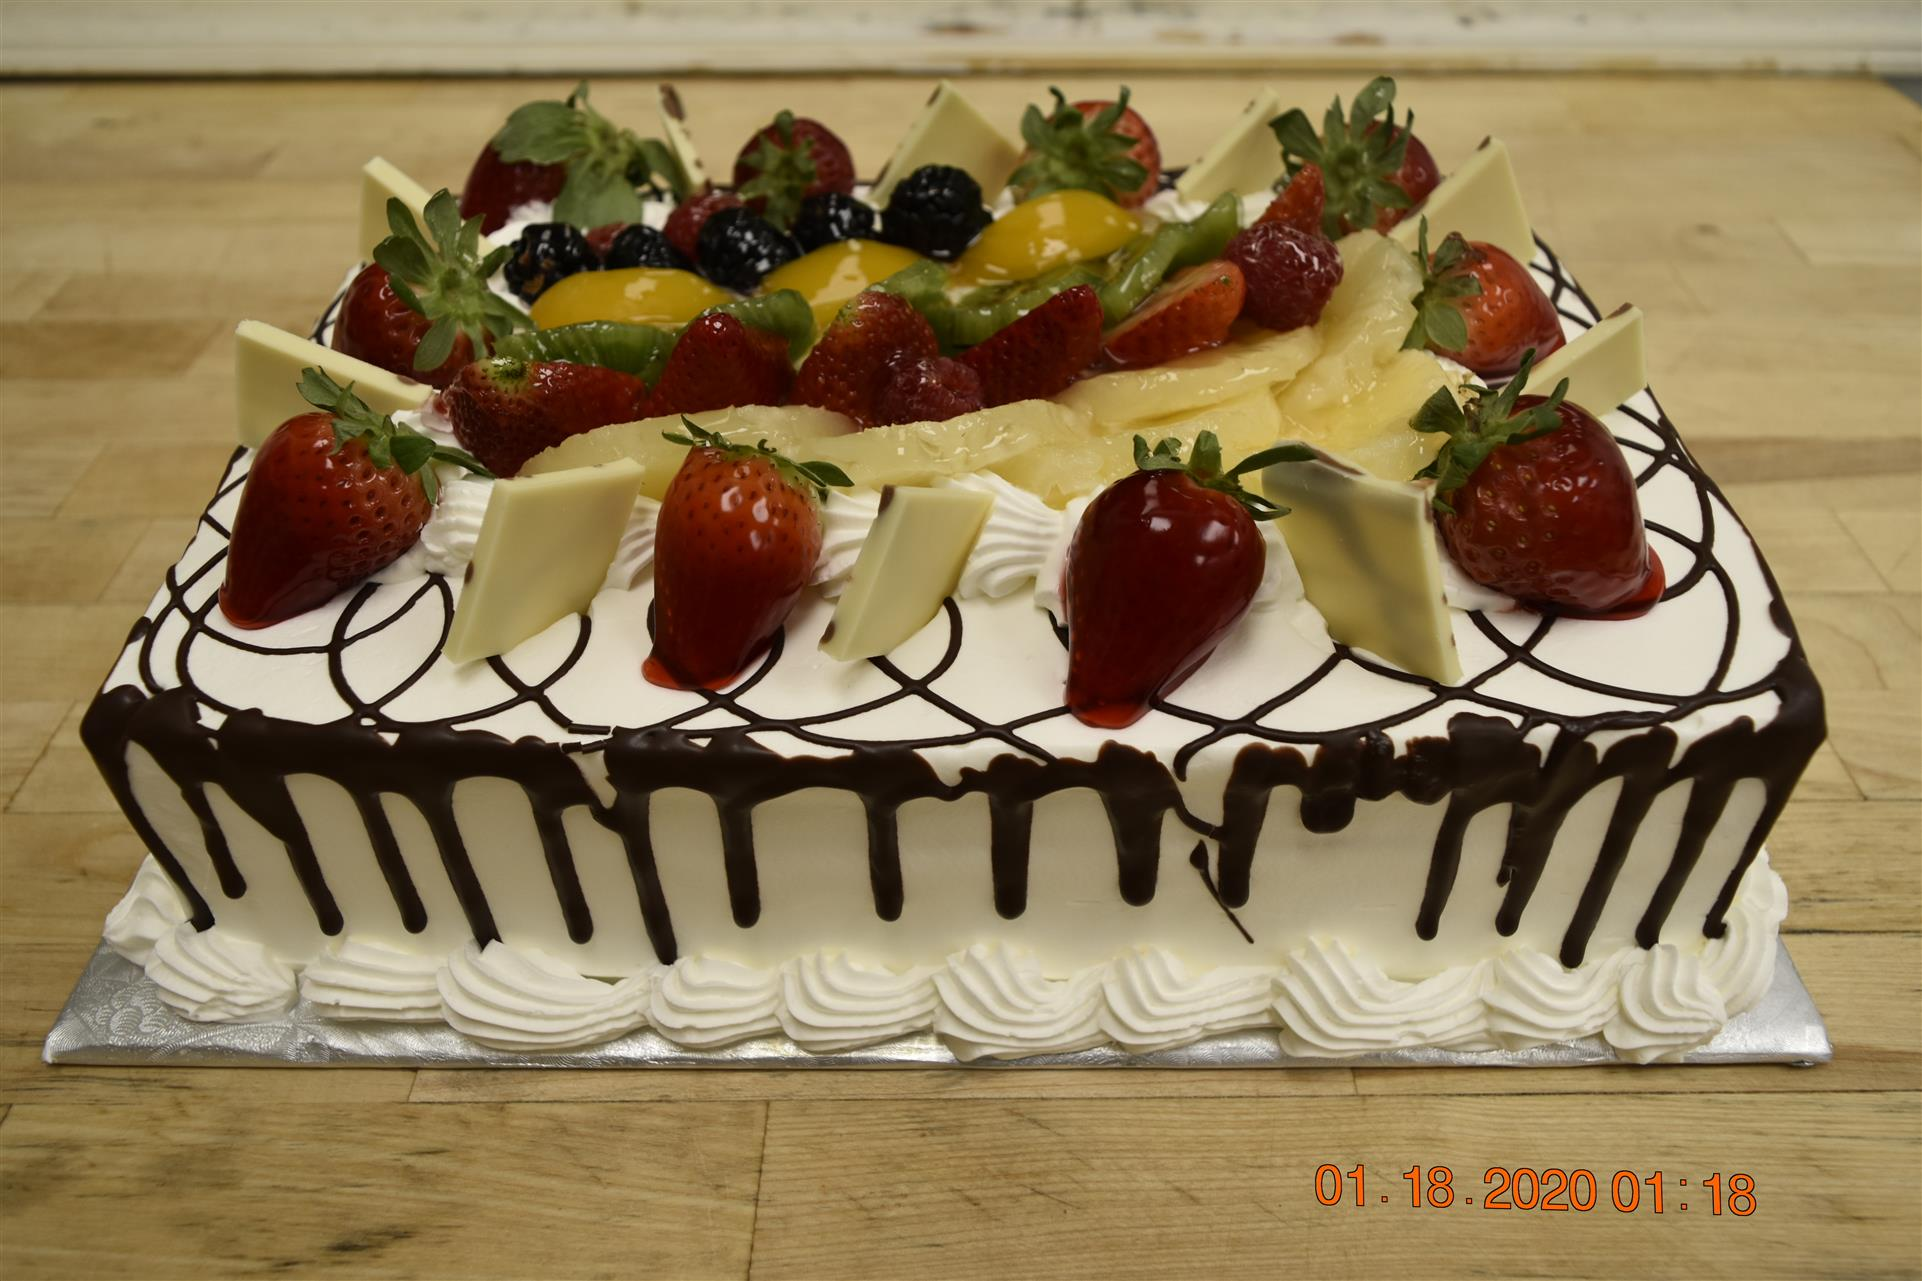 vanilla and chocolate cake with various fruits